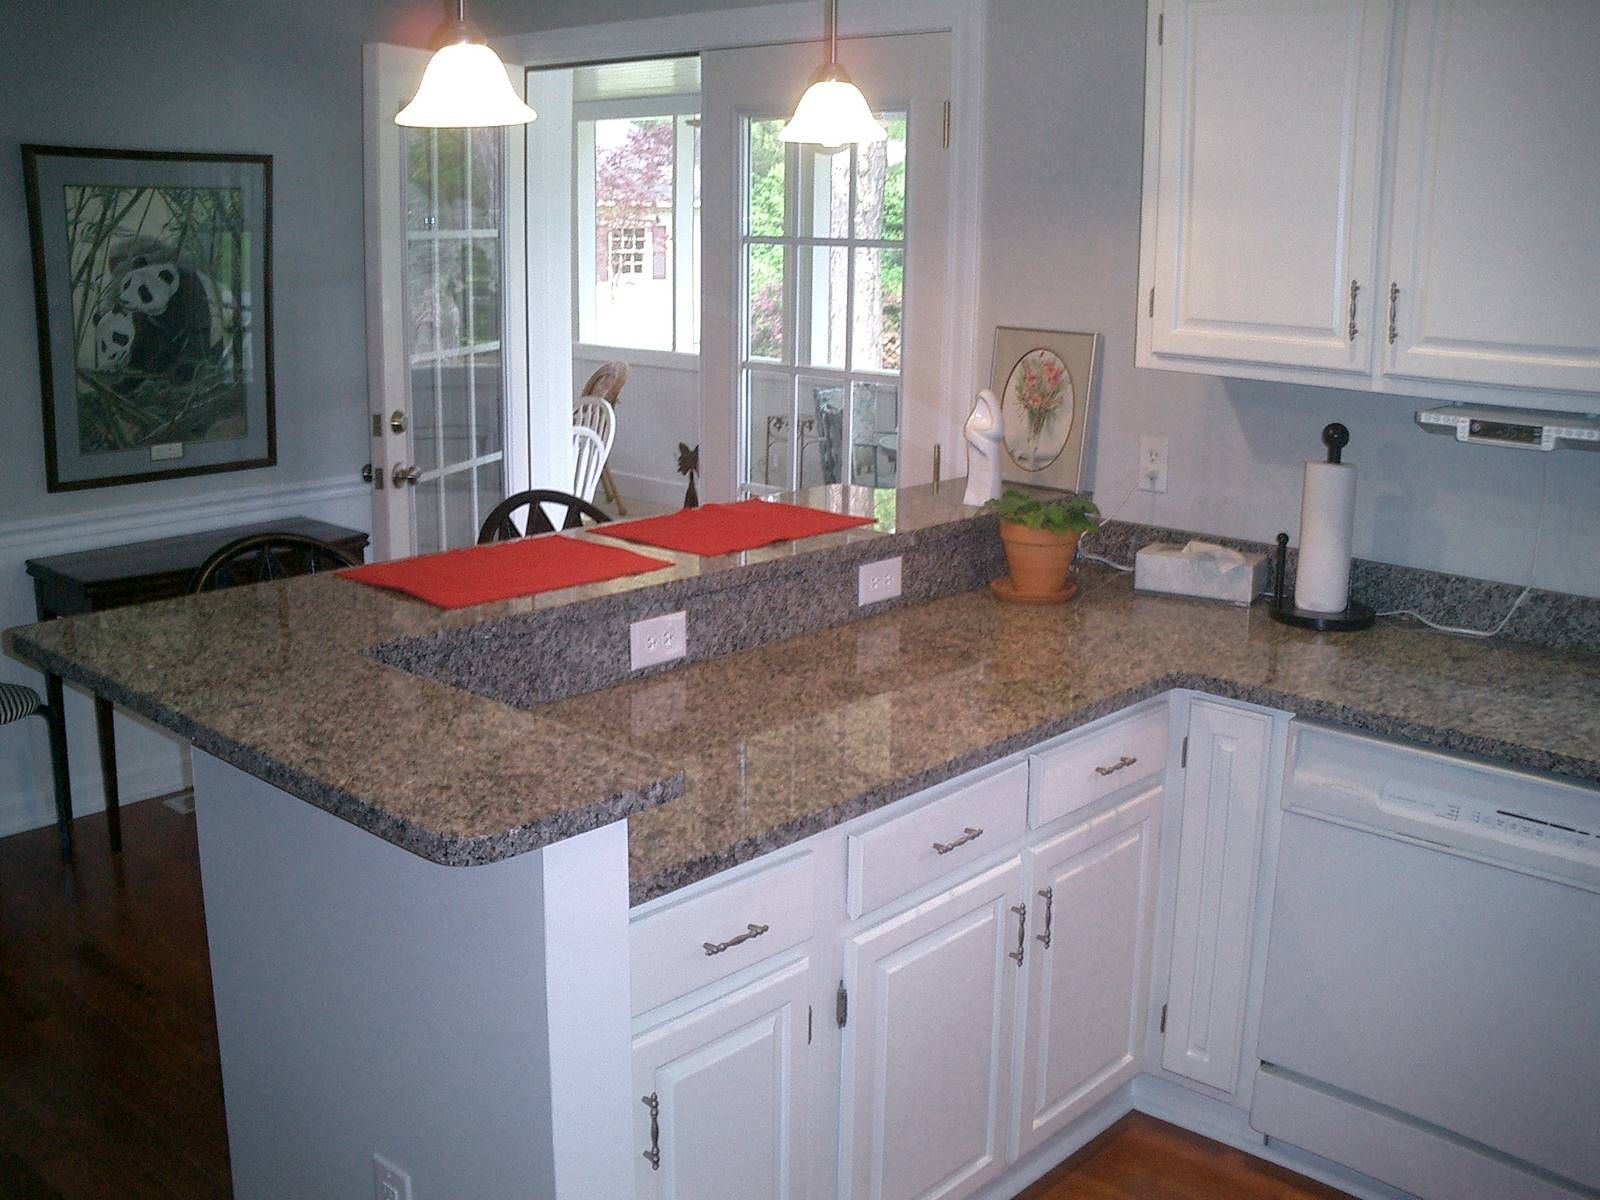 Kitchen White Cabinet With New Caledonia Countertop Two Level Island Granite Countertops For A Stunning Look